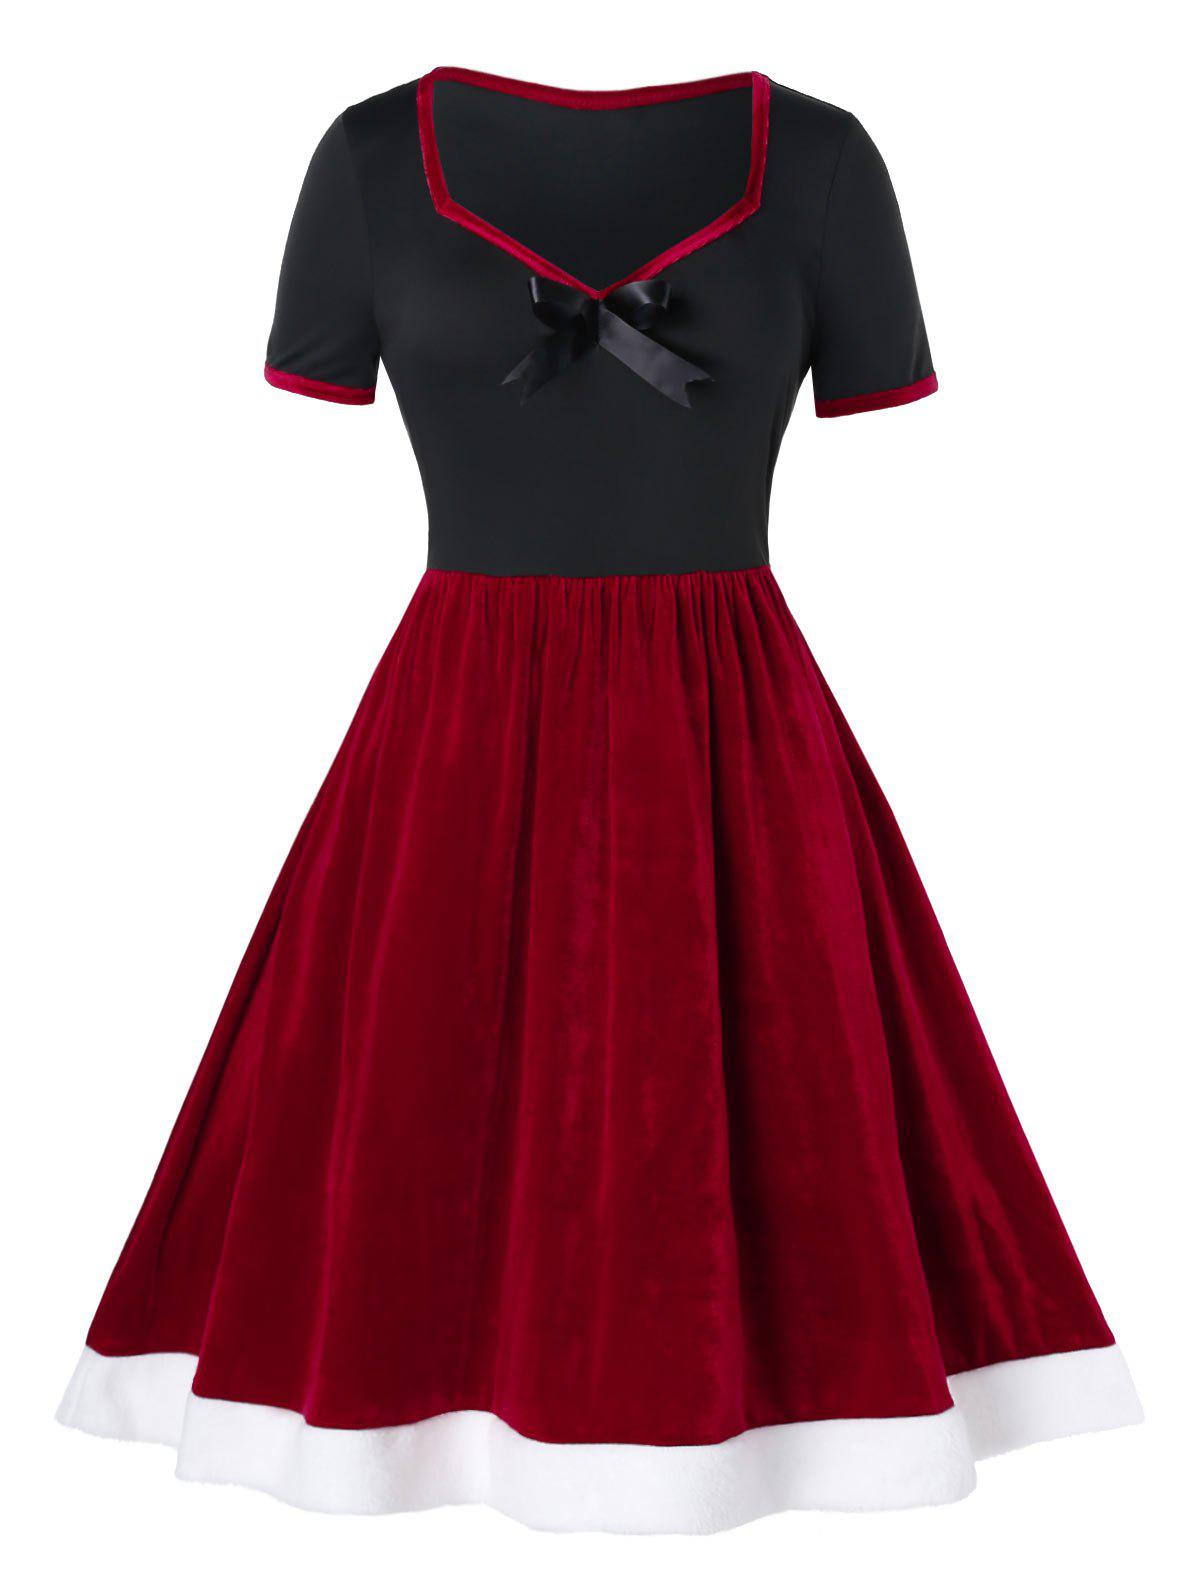 Plus Size Two Tone Velvet Dress Swing Vintage - Rouge Cerise 4X